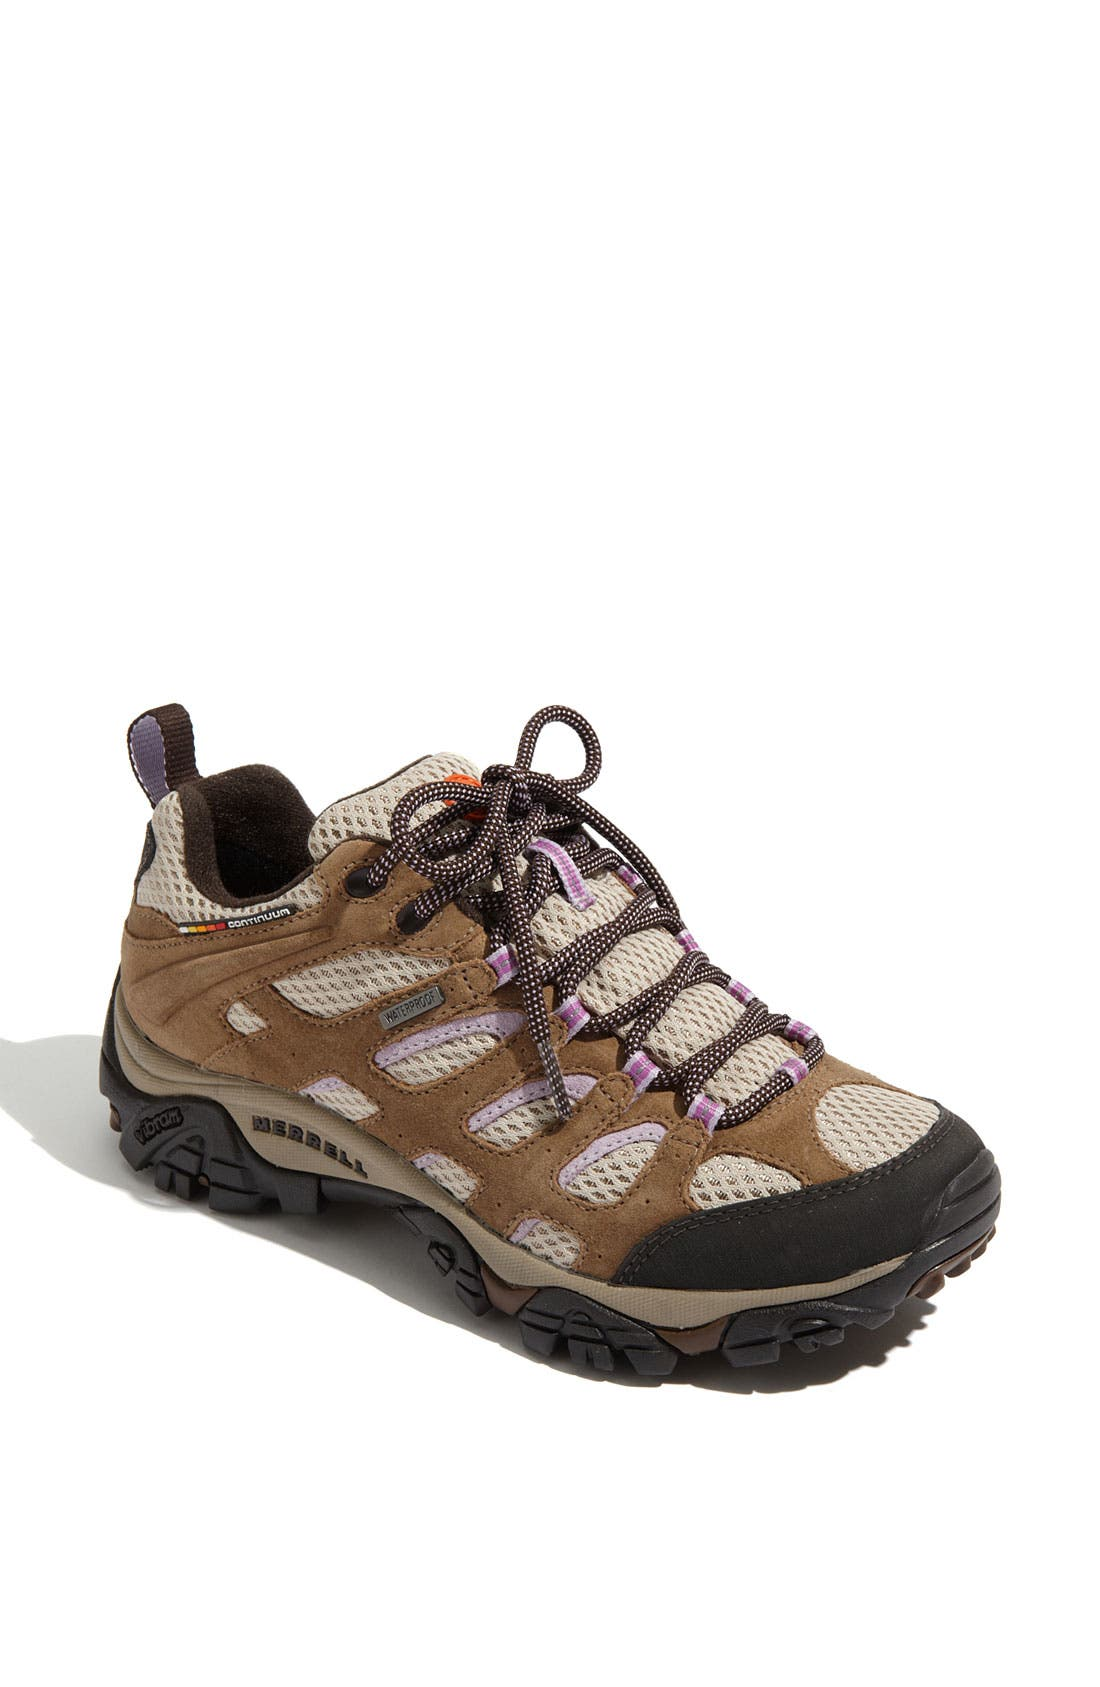 Alternate Image 1 Selected - Merrell 'Moab Waterproof' Trail Shoe (Women)